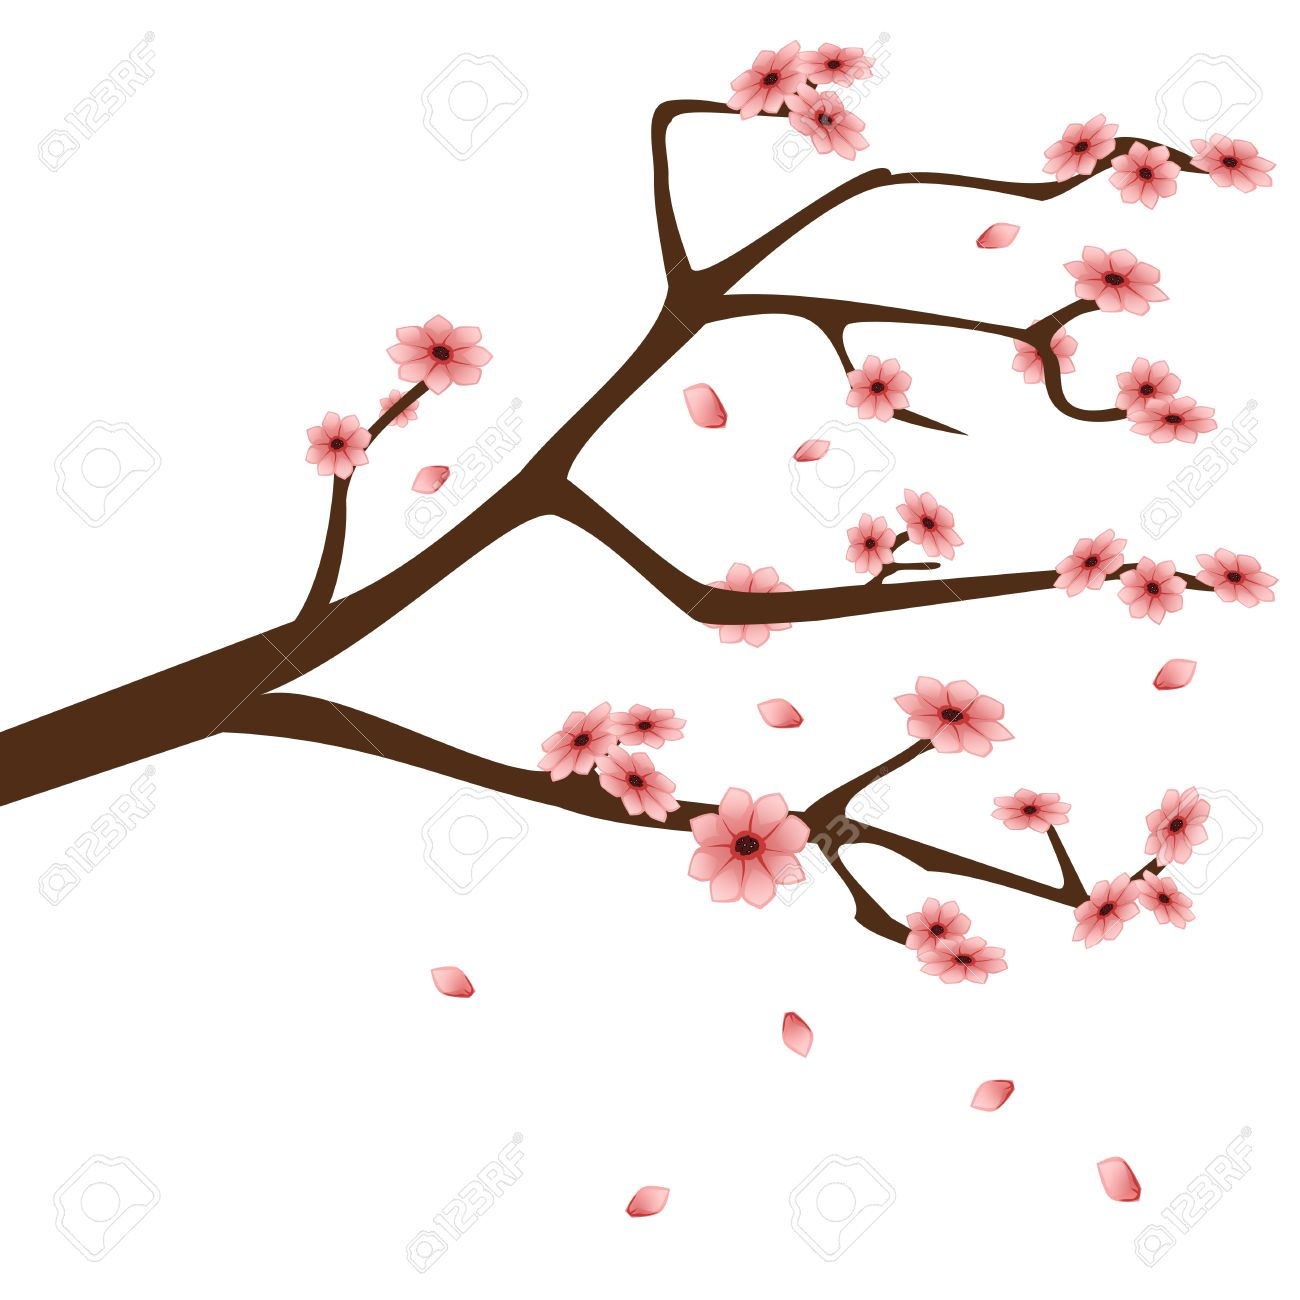 Almond Flower Clip Art.